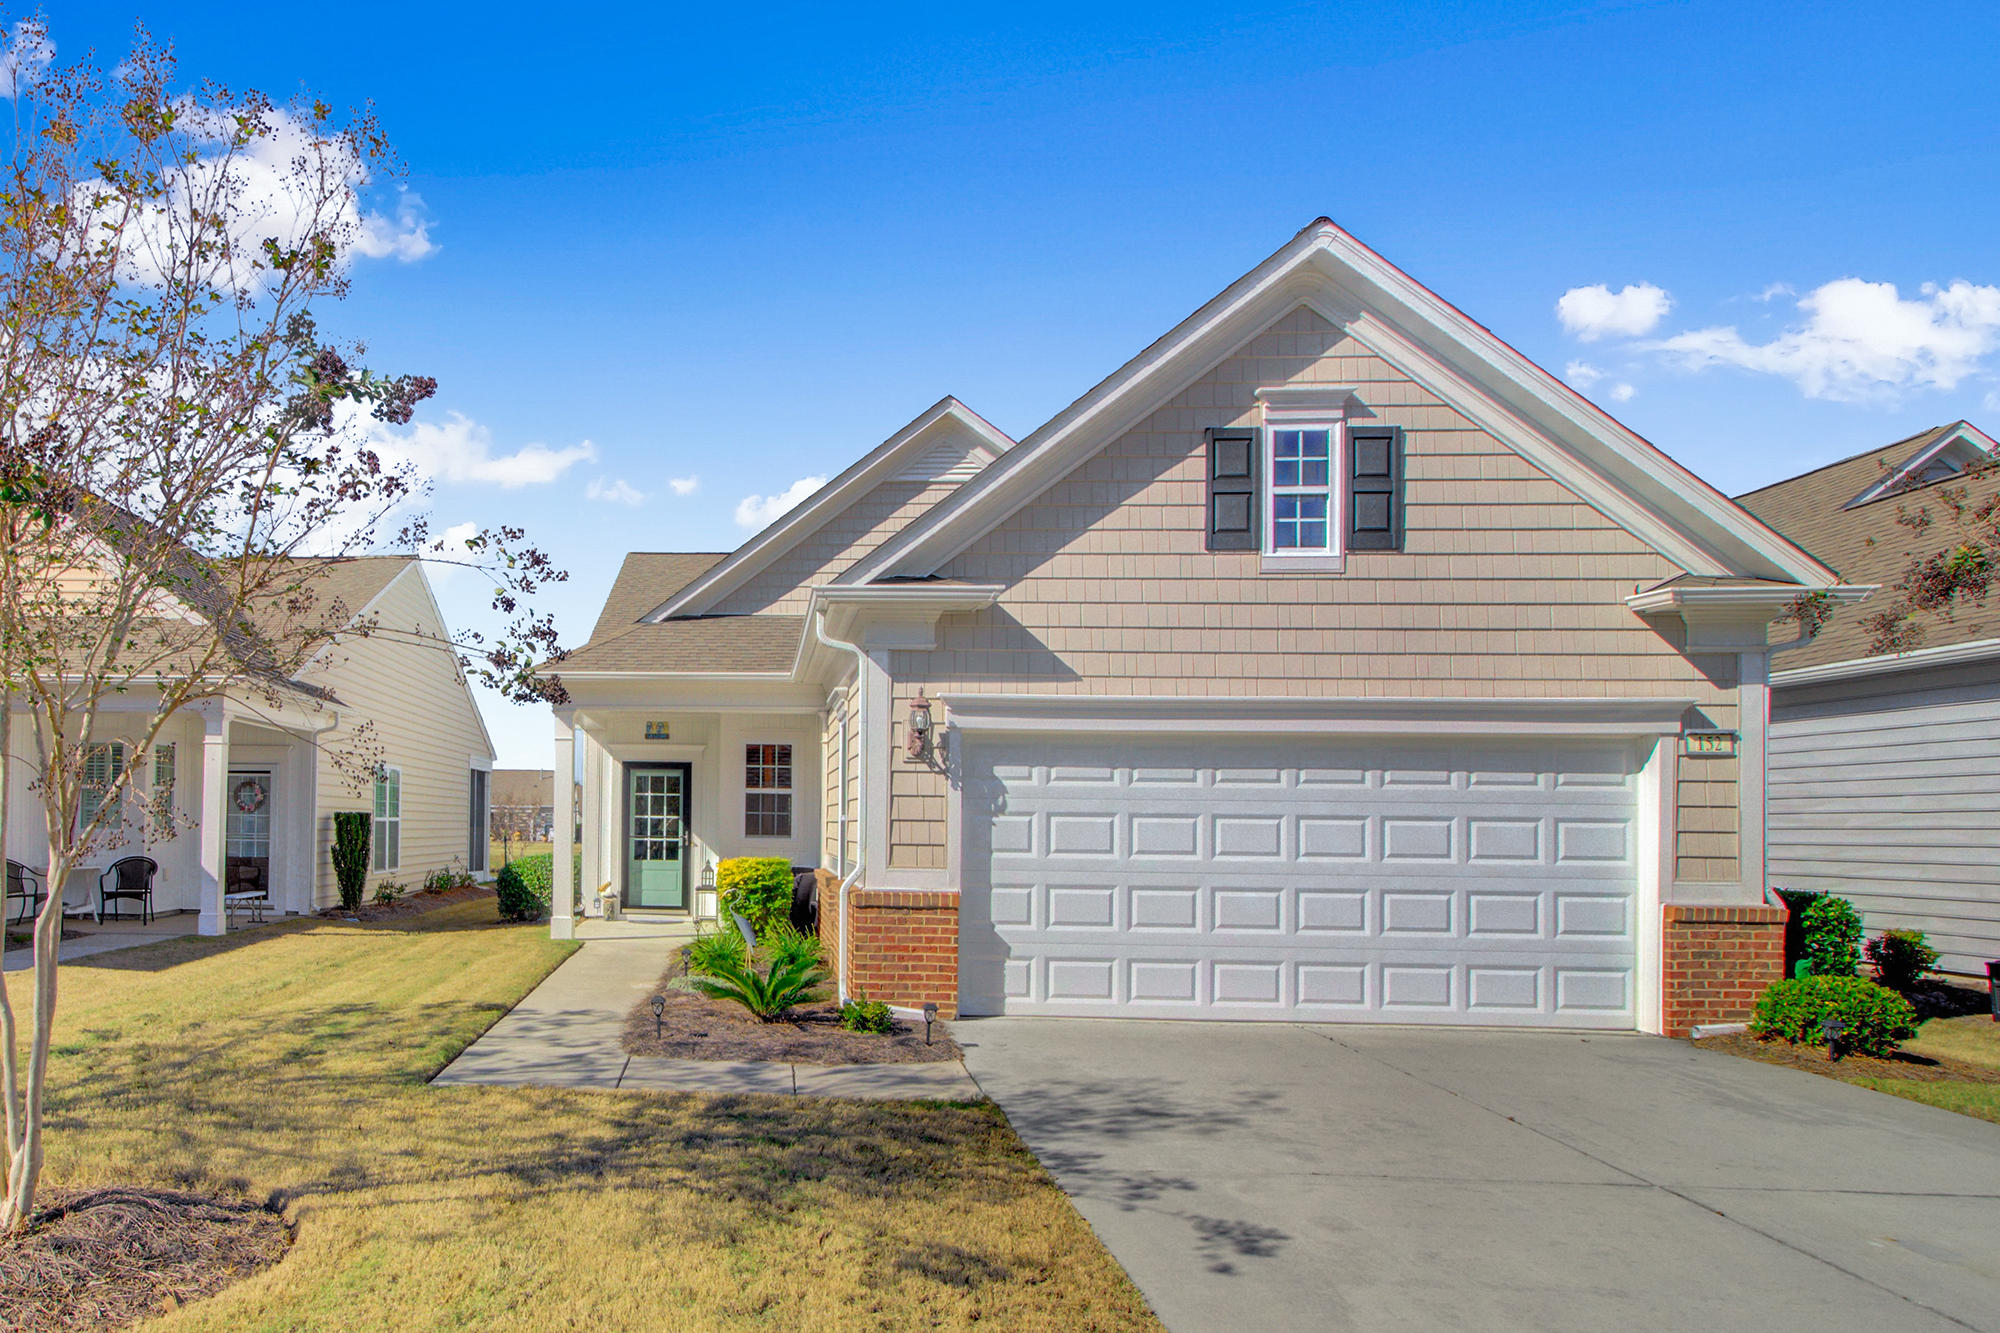 152 Sea Lavender Lane Summerville, SC 29486